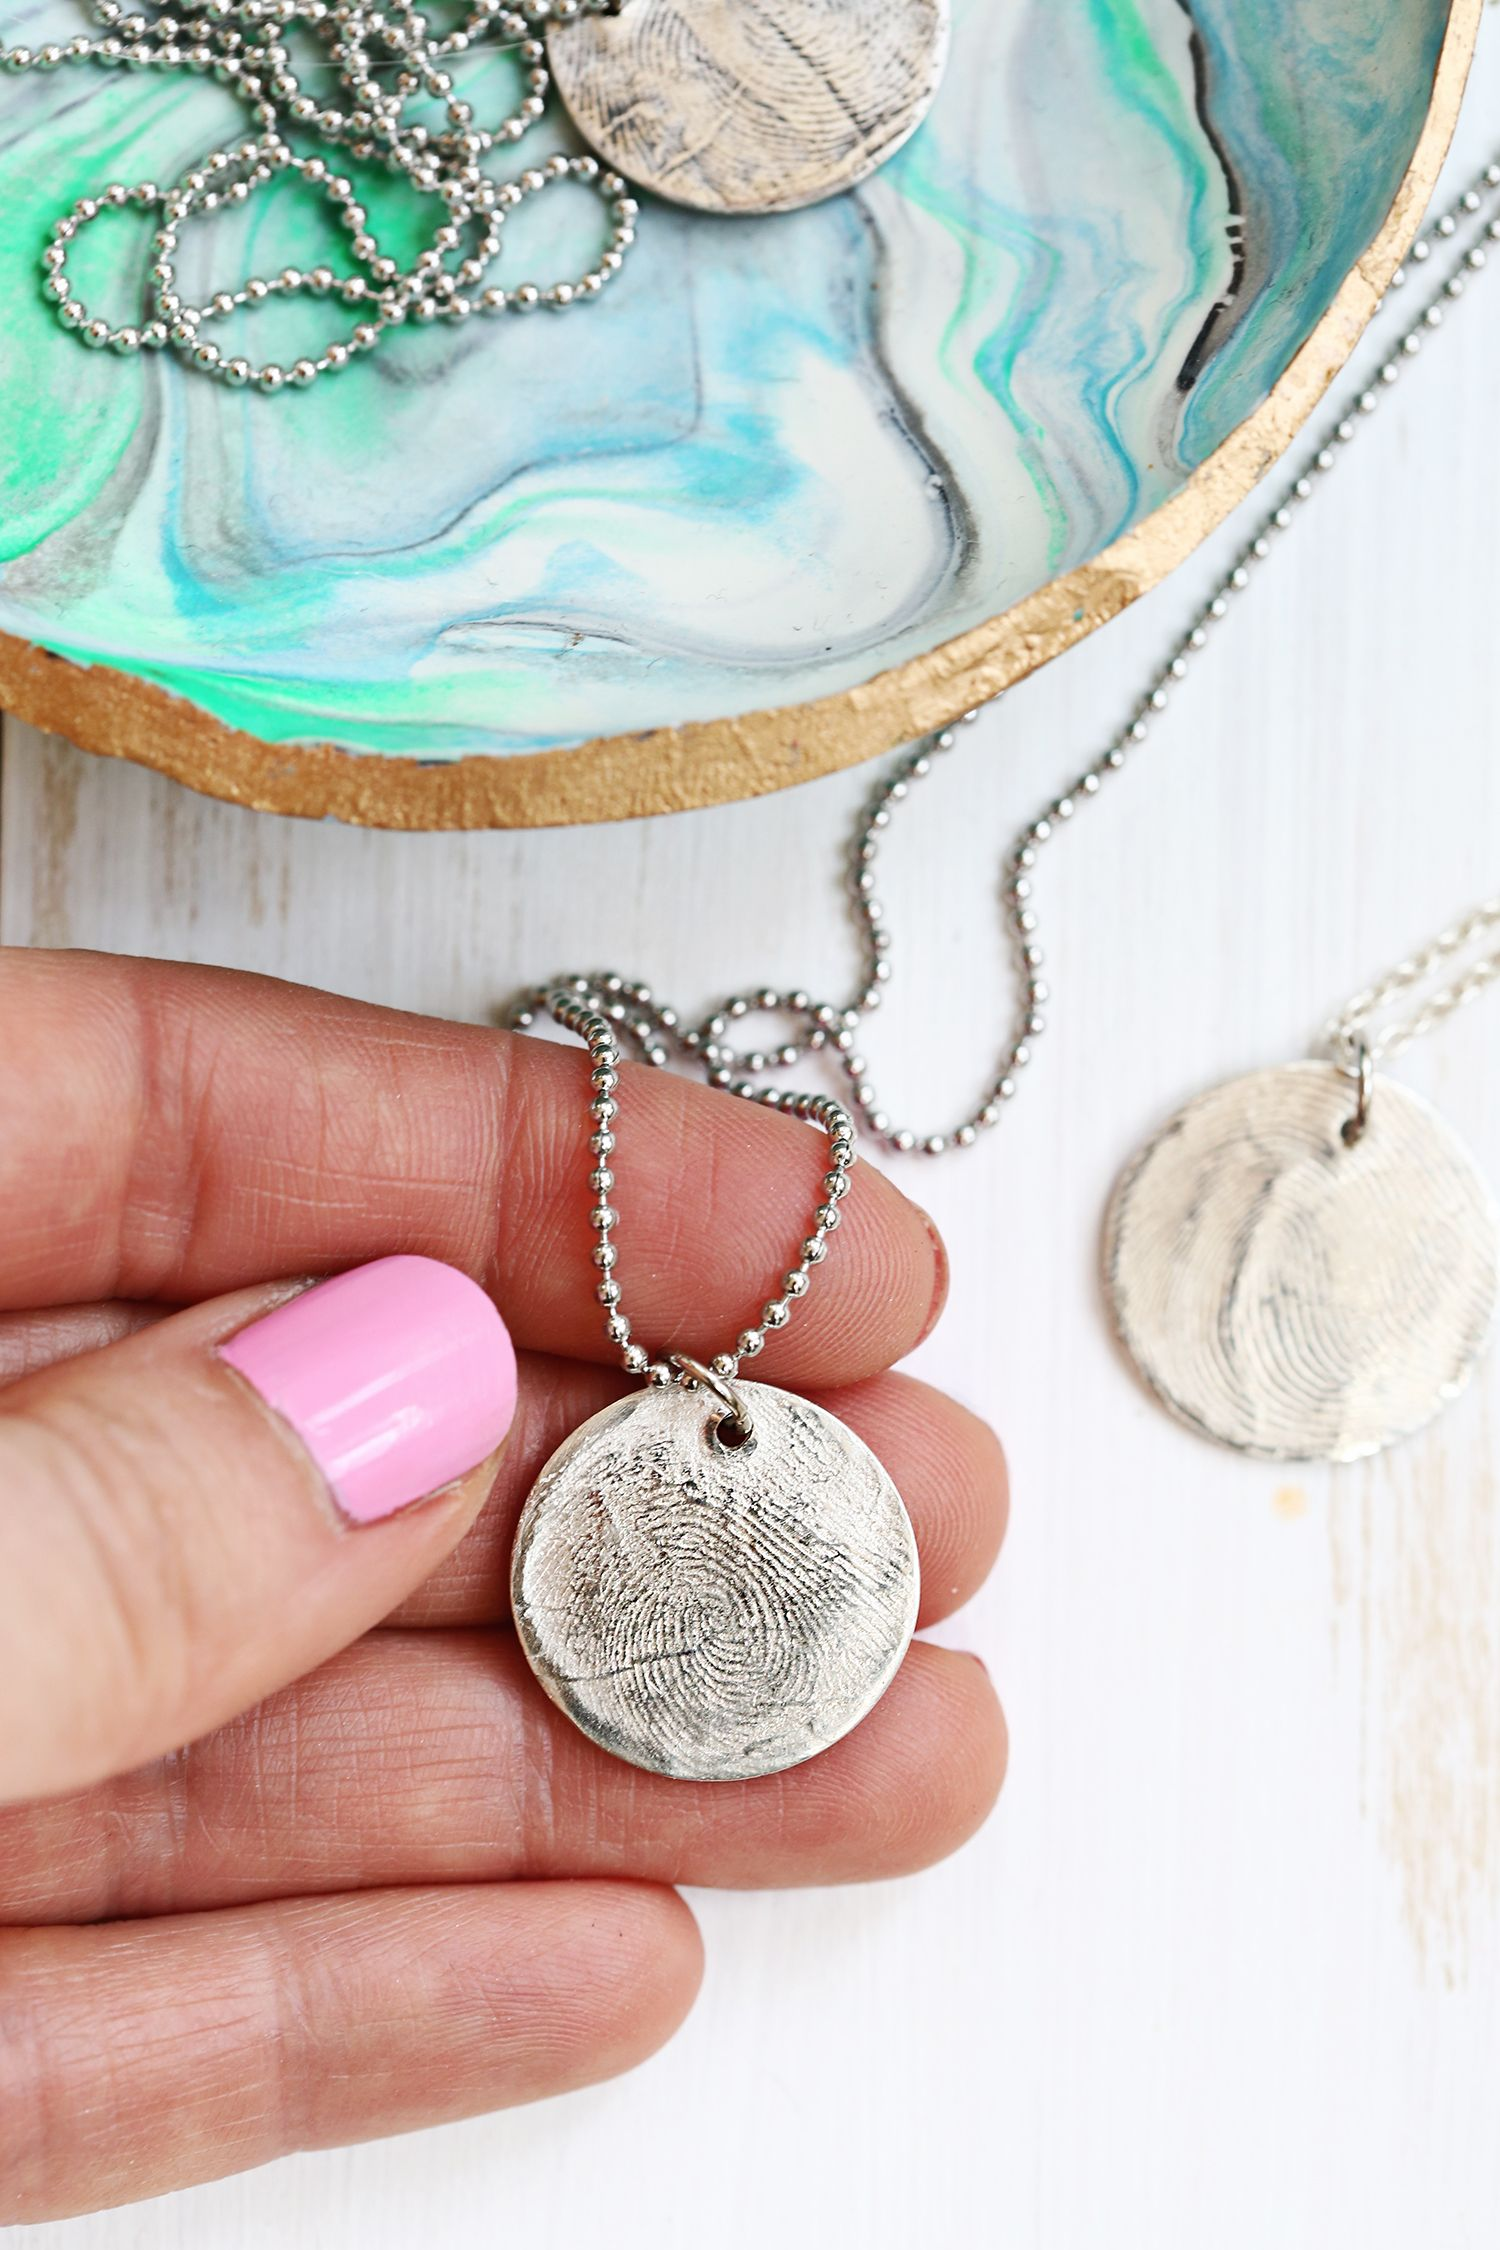 Have To Do This Use Metal Clay At Home Make A Pure Silver Fingerprint